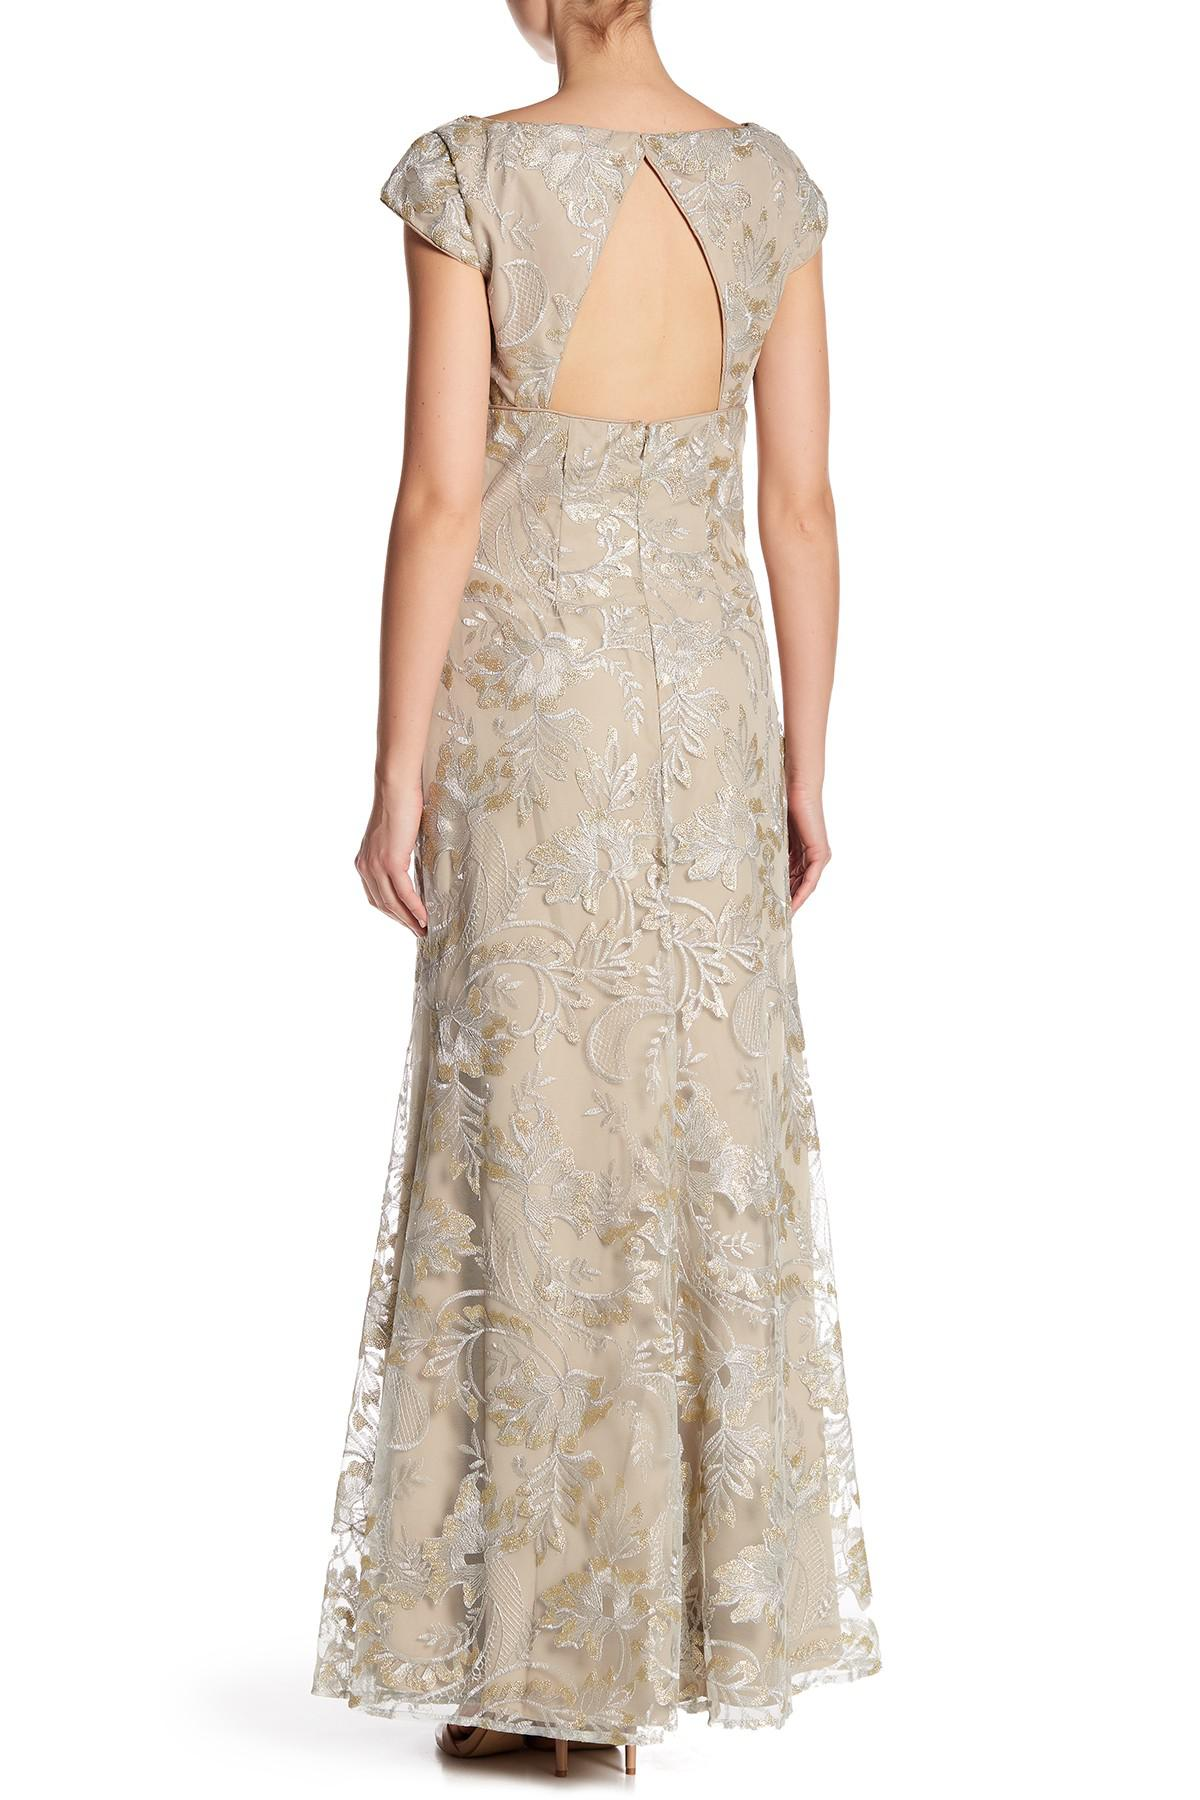 Js collections Beaded Gold Long Dress in Metallic | Lyst